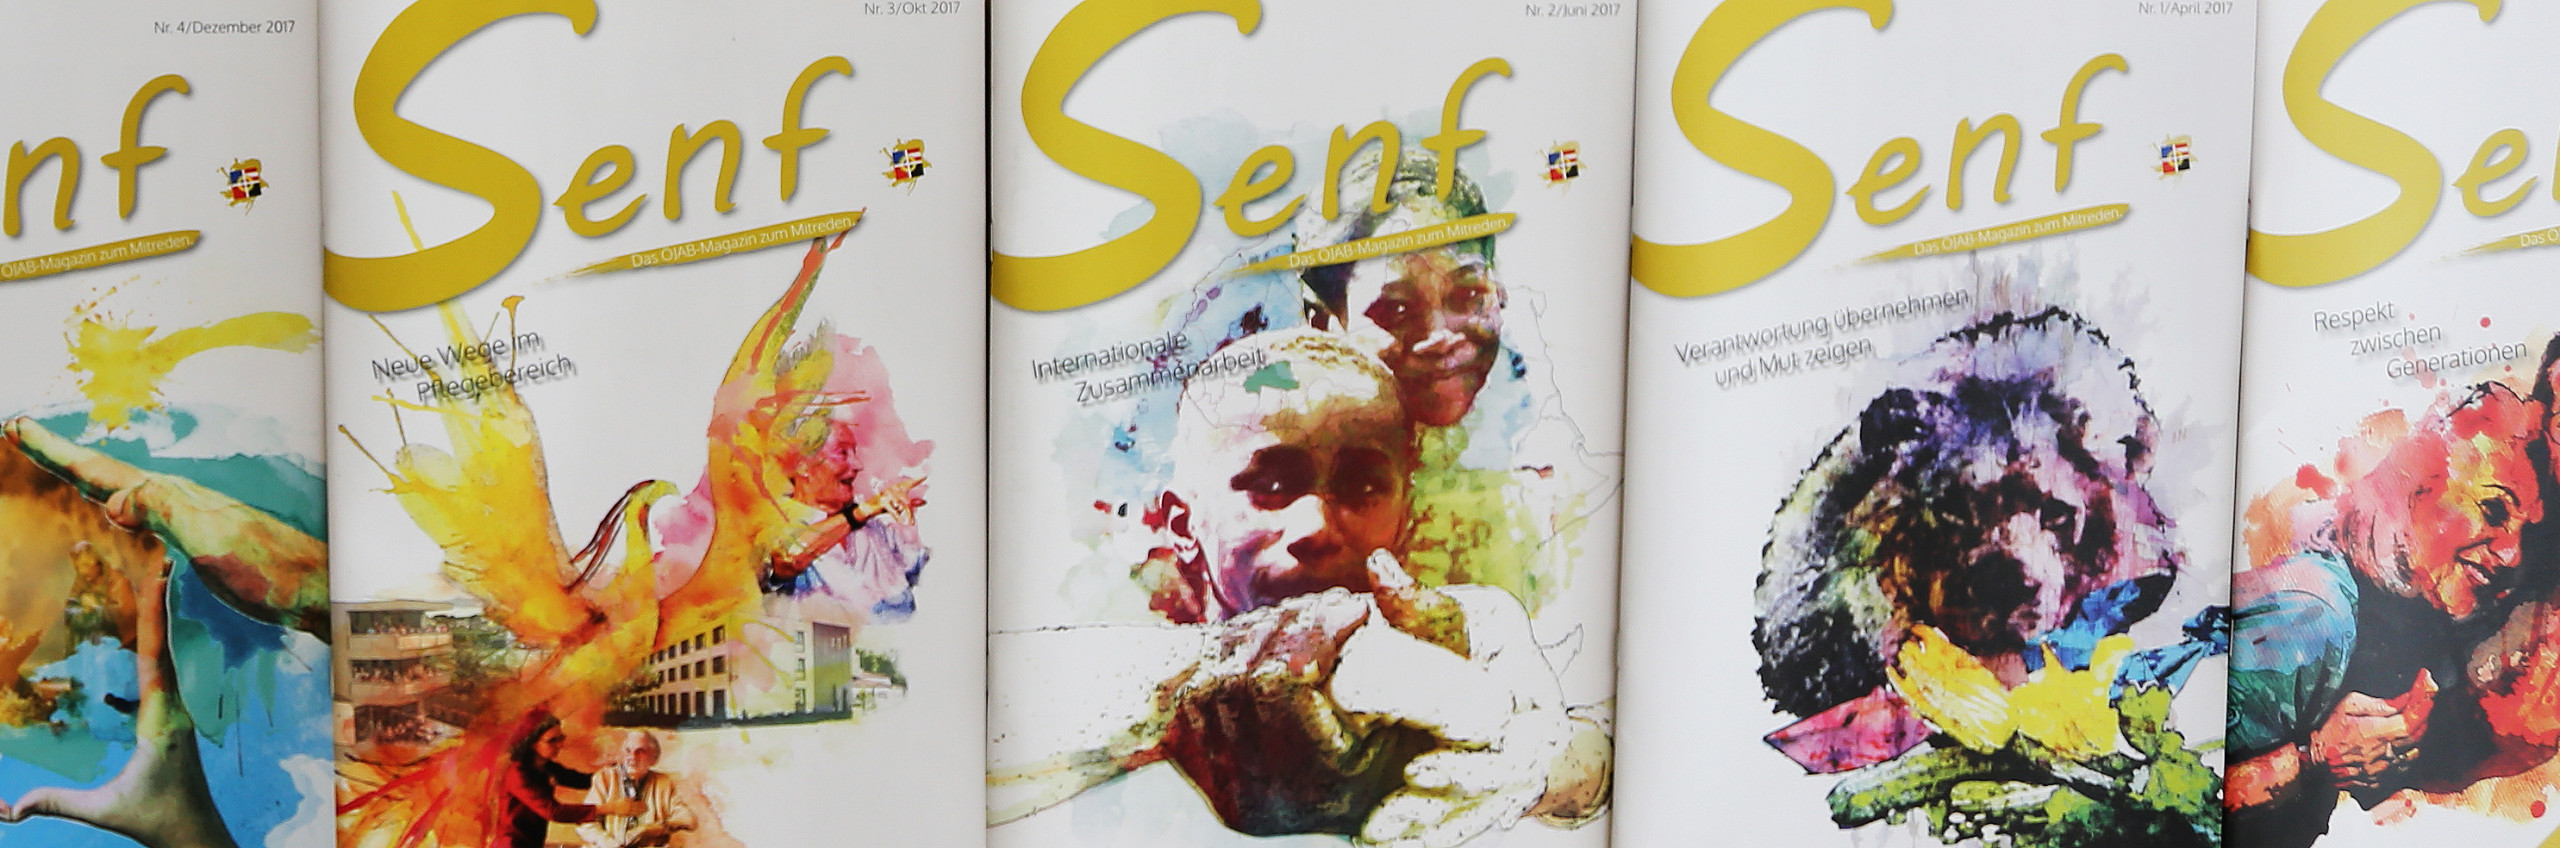 "Collage of several title covers of the ÖJAB magazine ""Senf"""